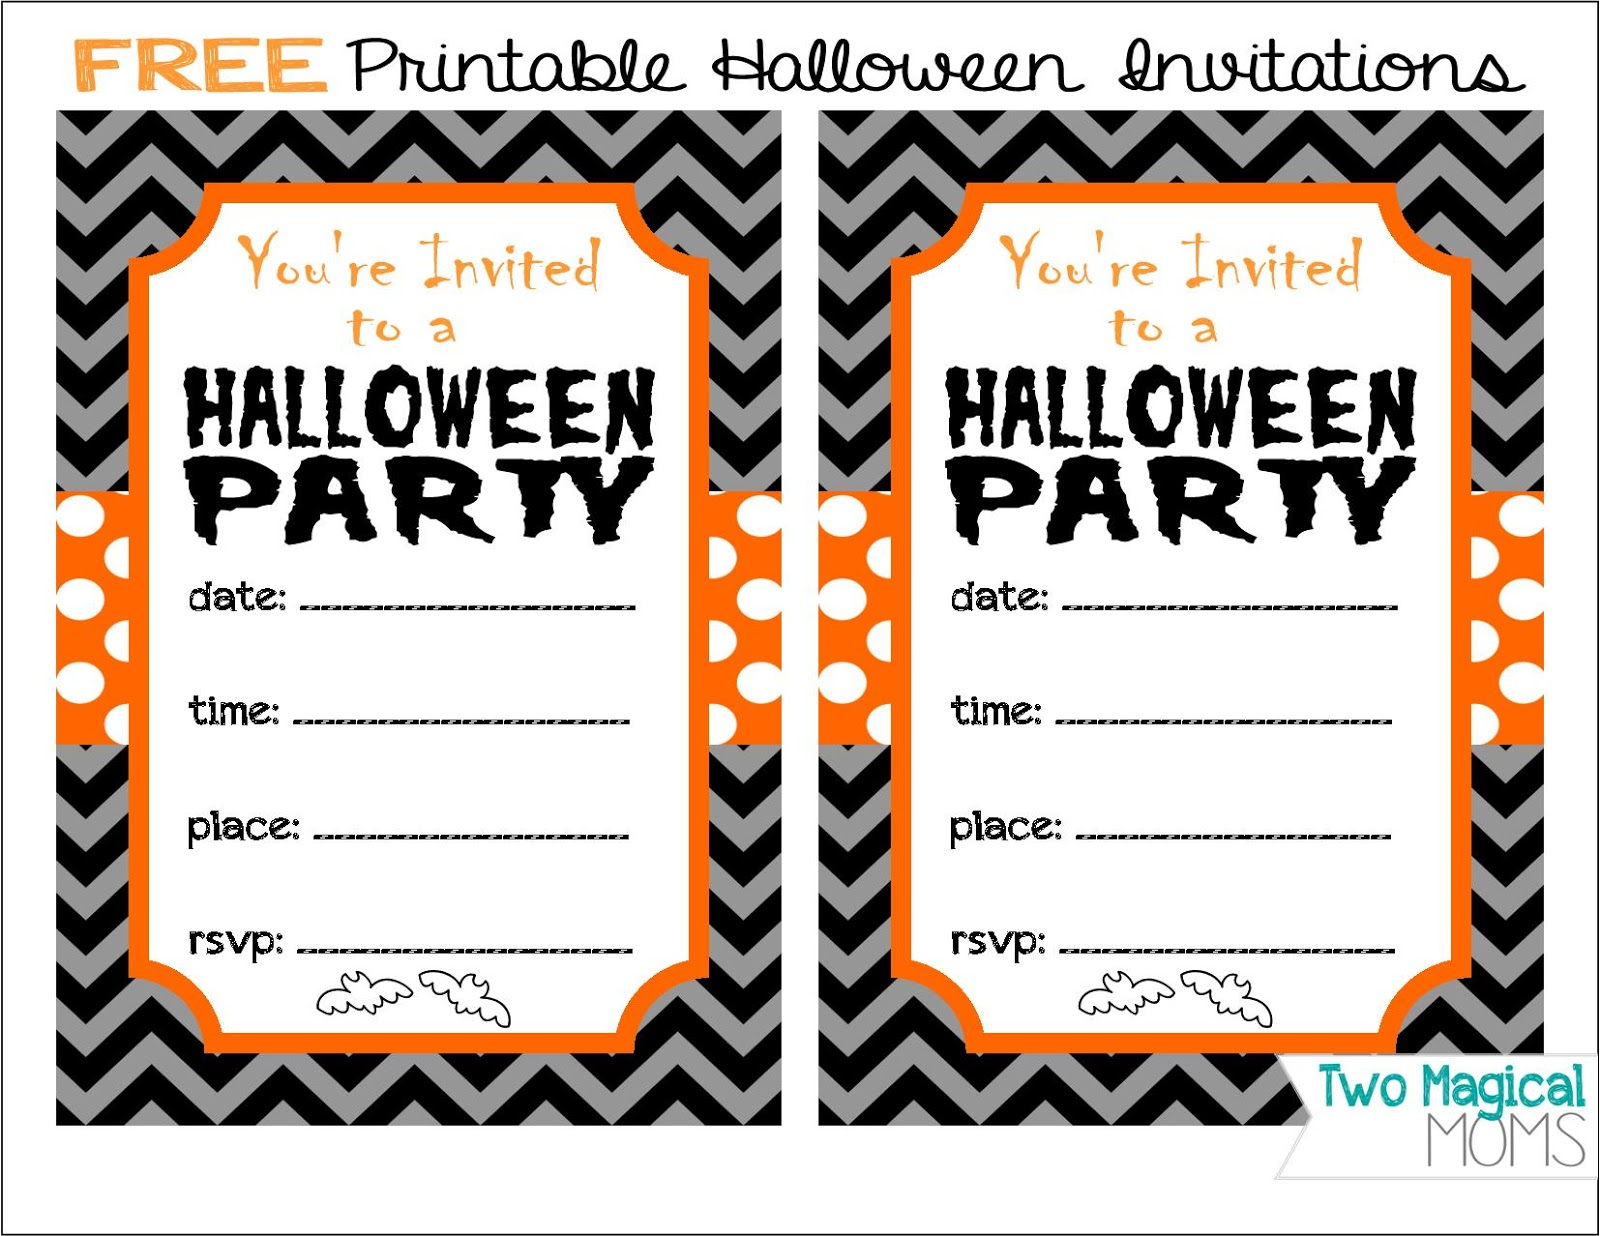 Two Magical Moms Free Printable Halloween Invitations